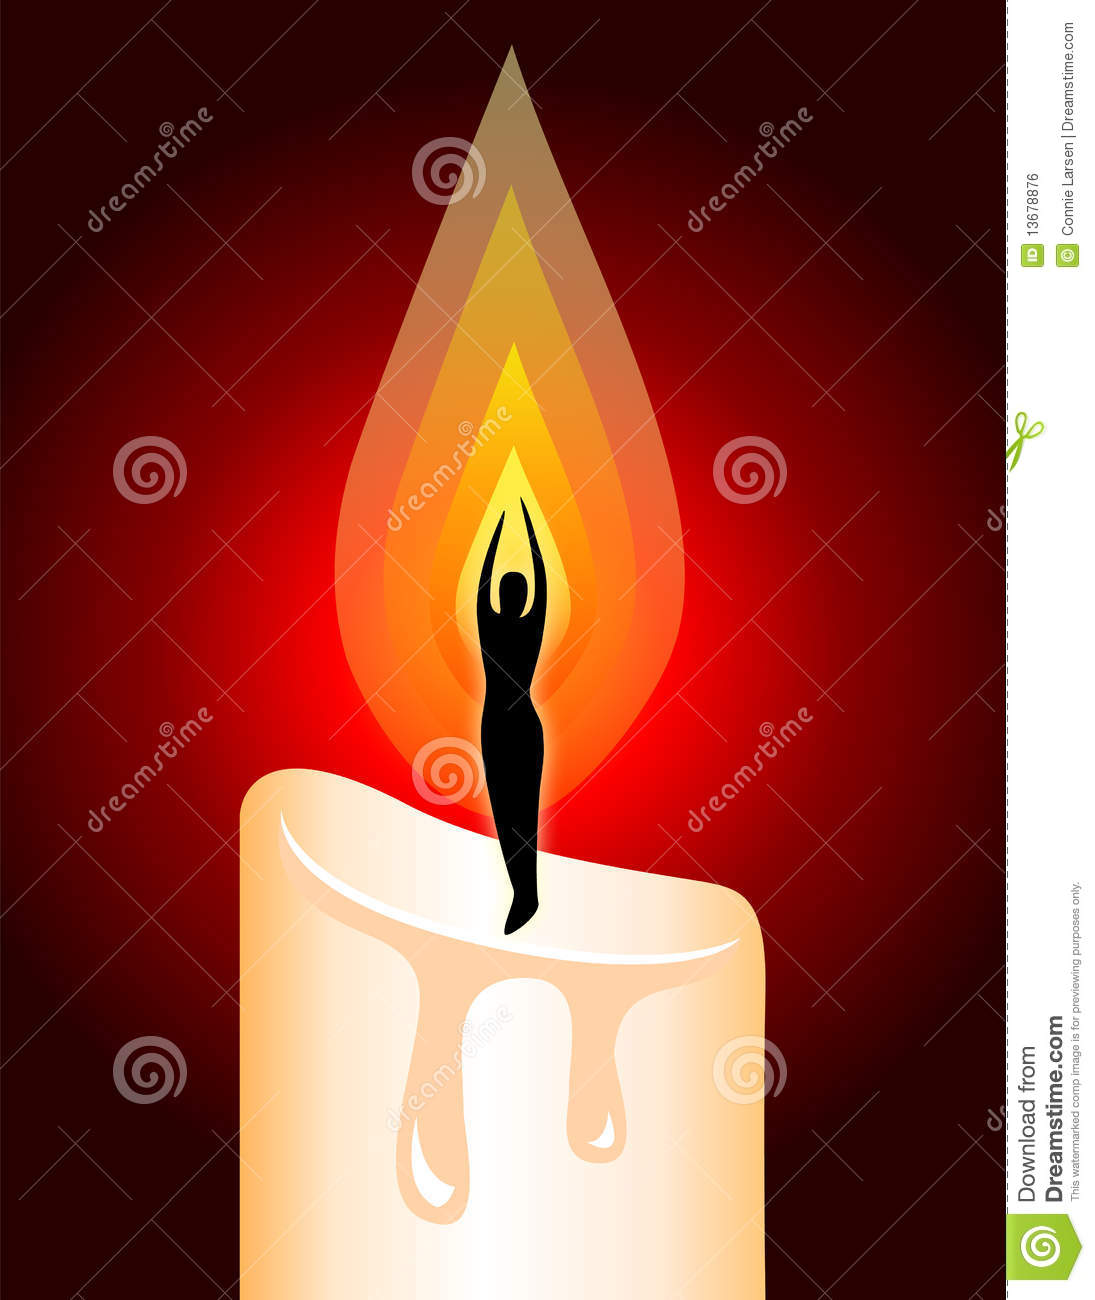 Illumination Meditation Candle/ai Royalty Free Stock Image.